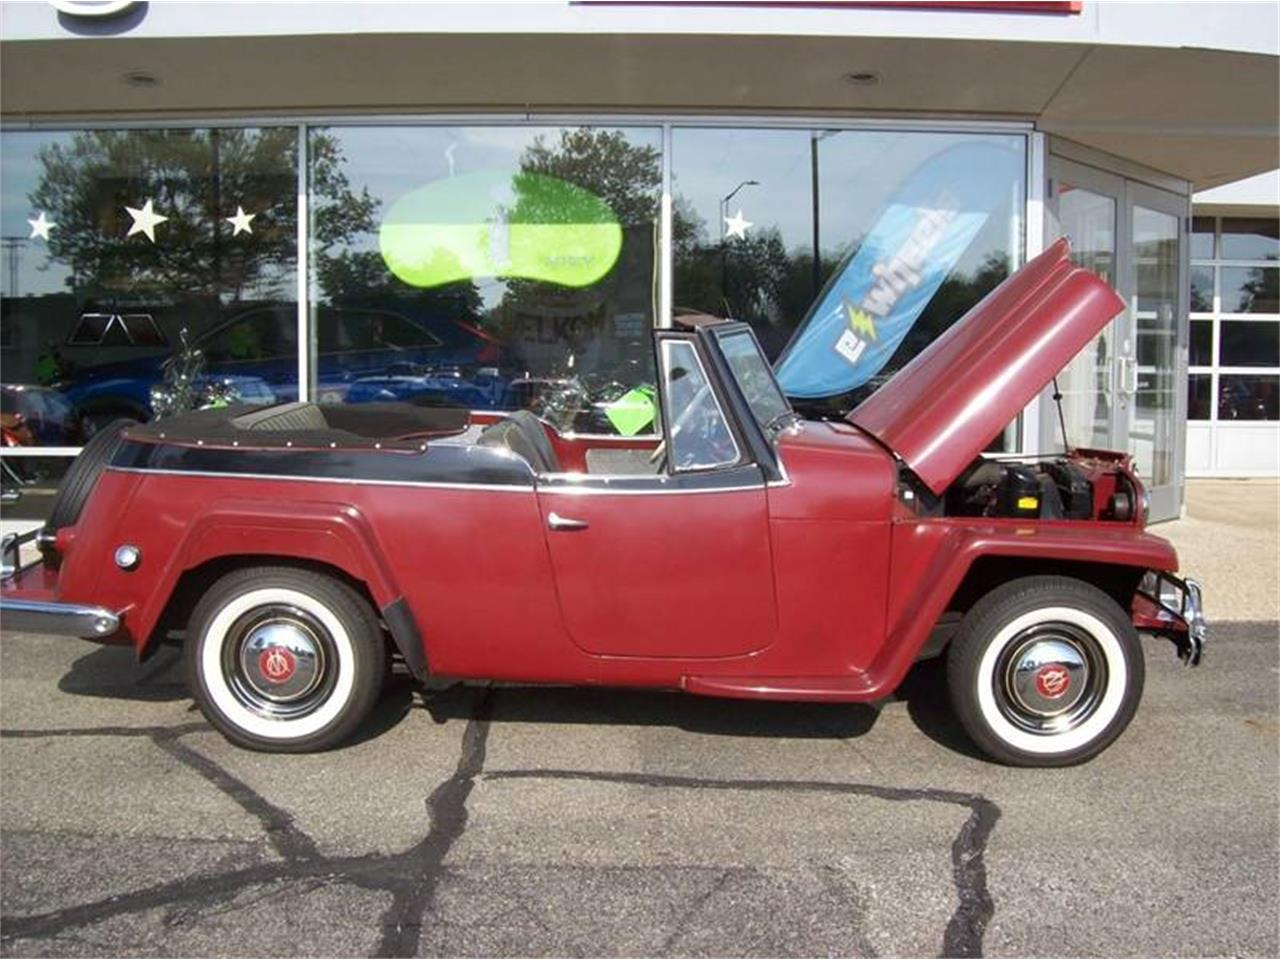 Large Picture of '51 Willys Jeepster - $20,900.00 Offered by Verhage Mitsubishi - NI8U